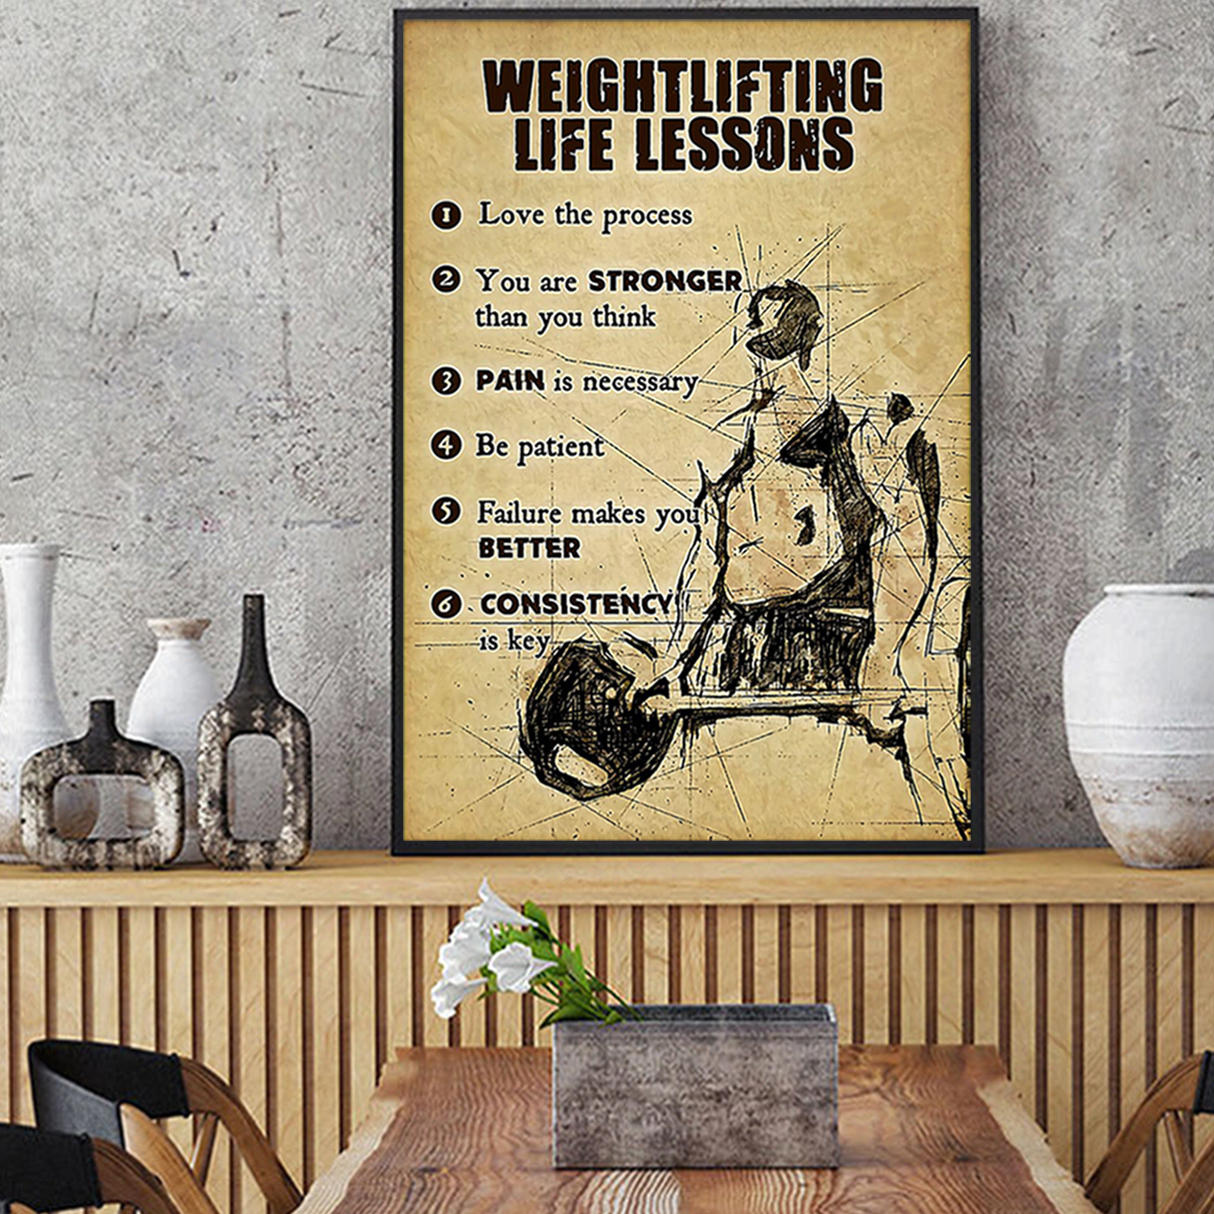 Fitness weightlifting life lessons poster A3